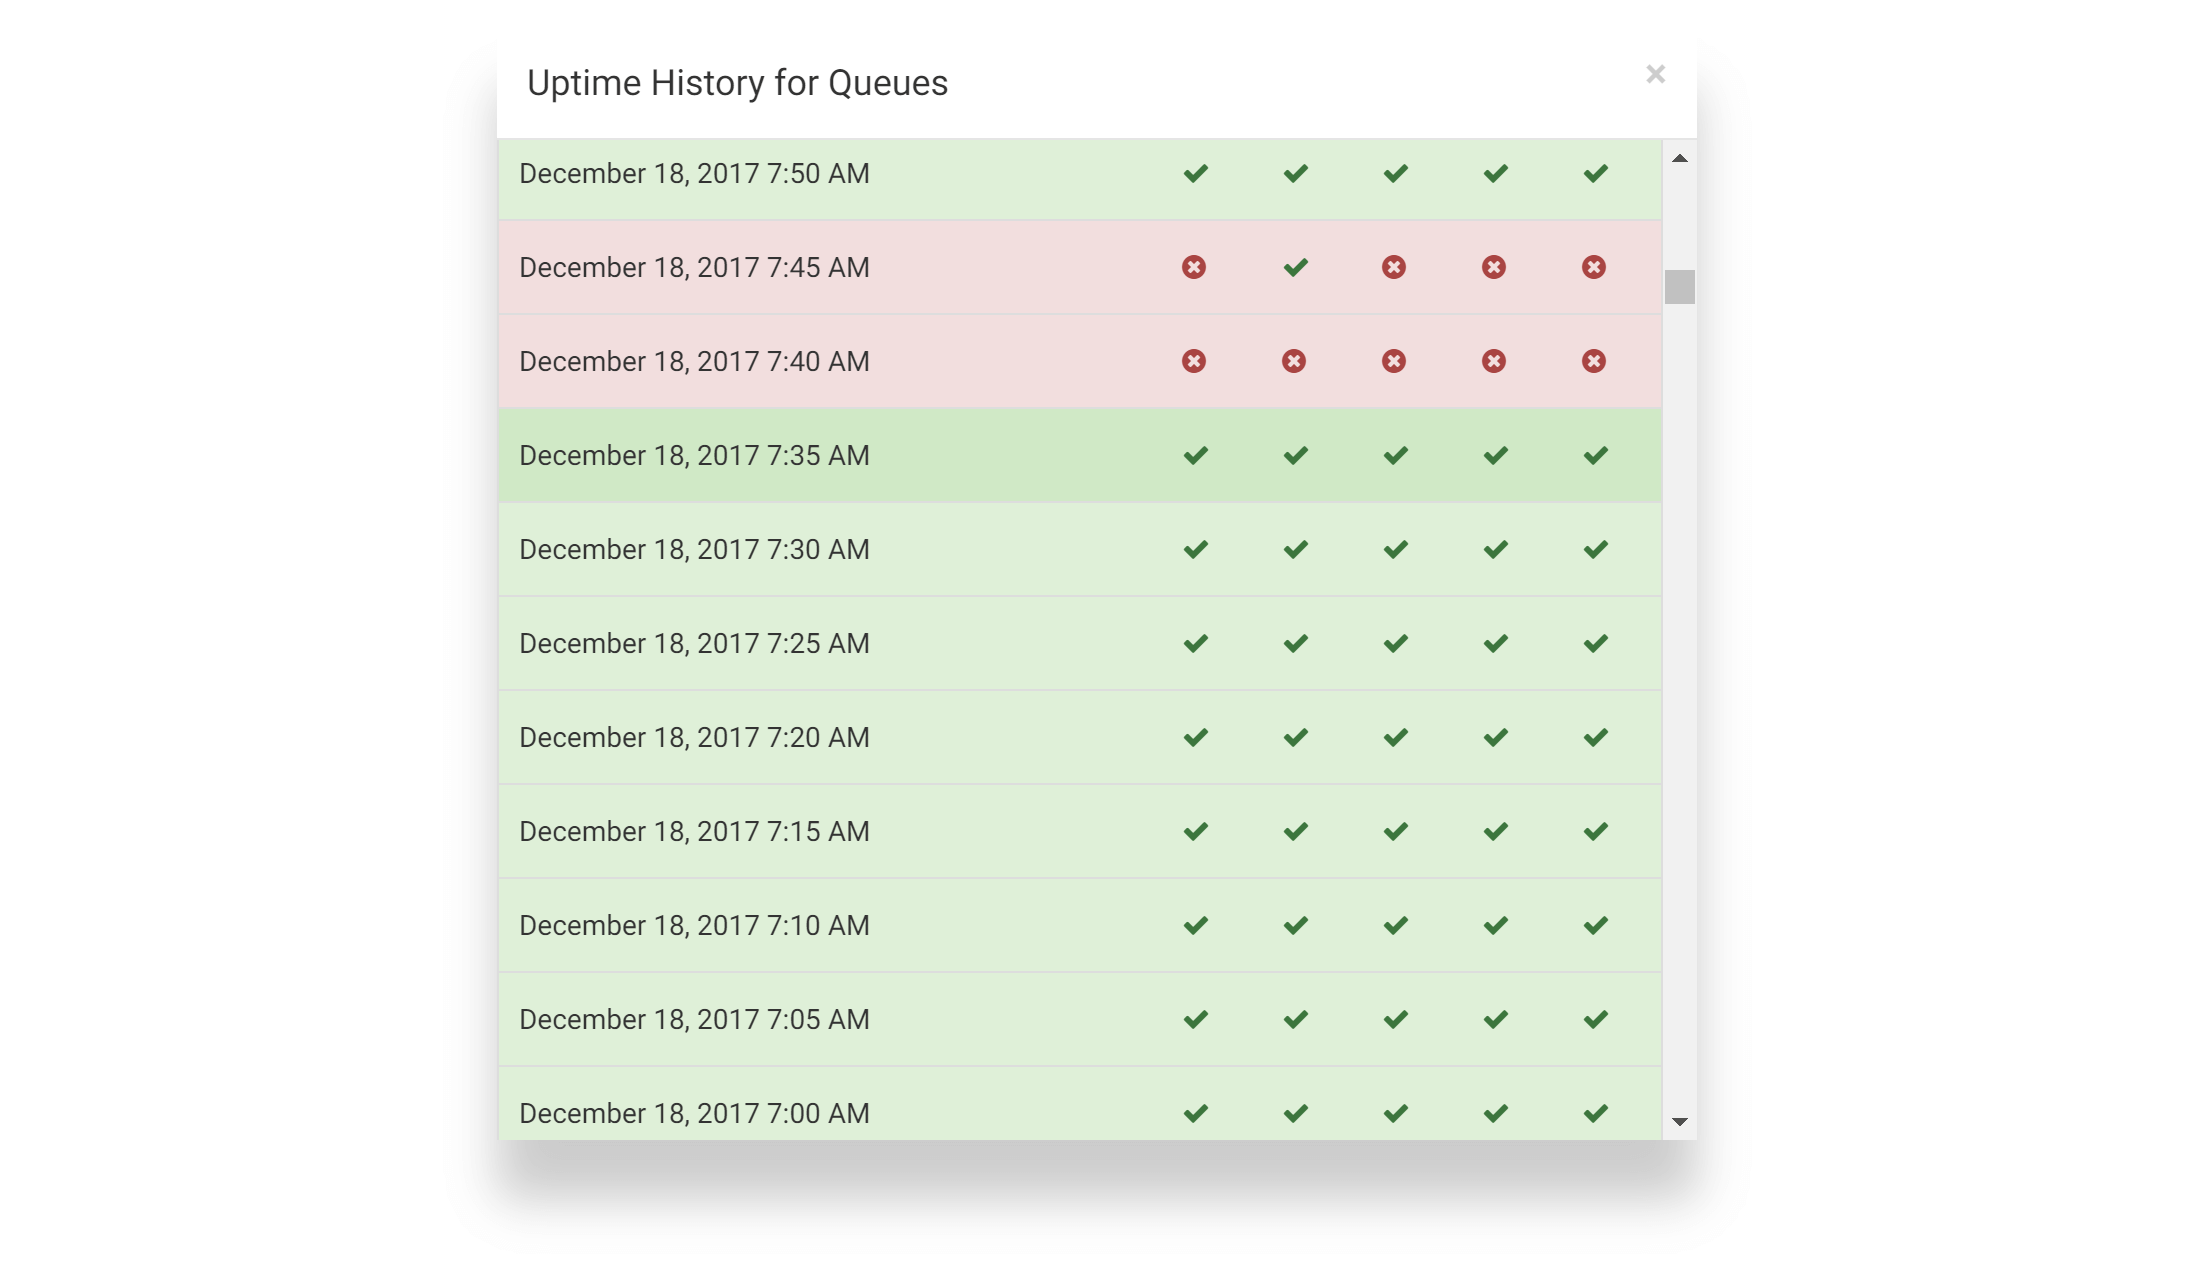 Uptime history